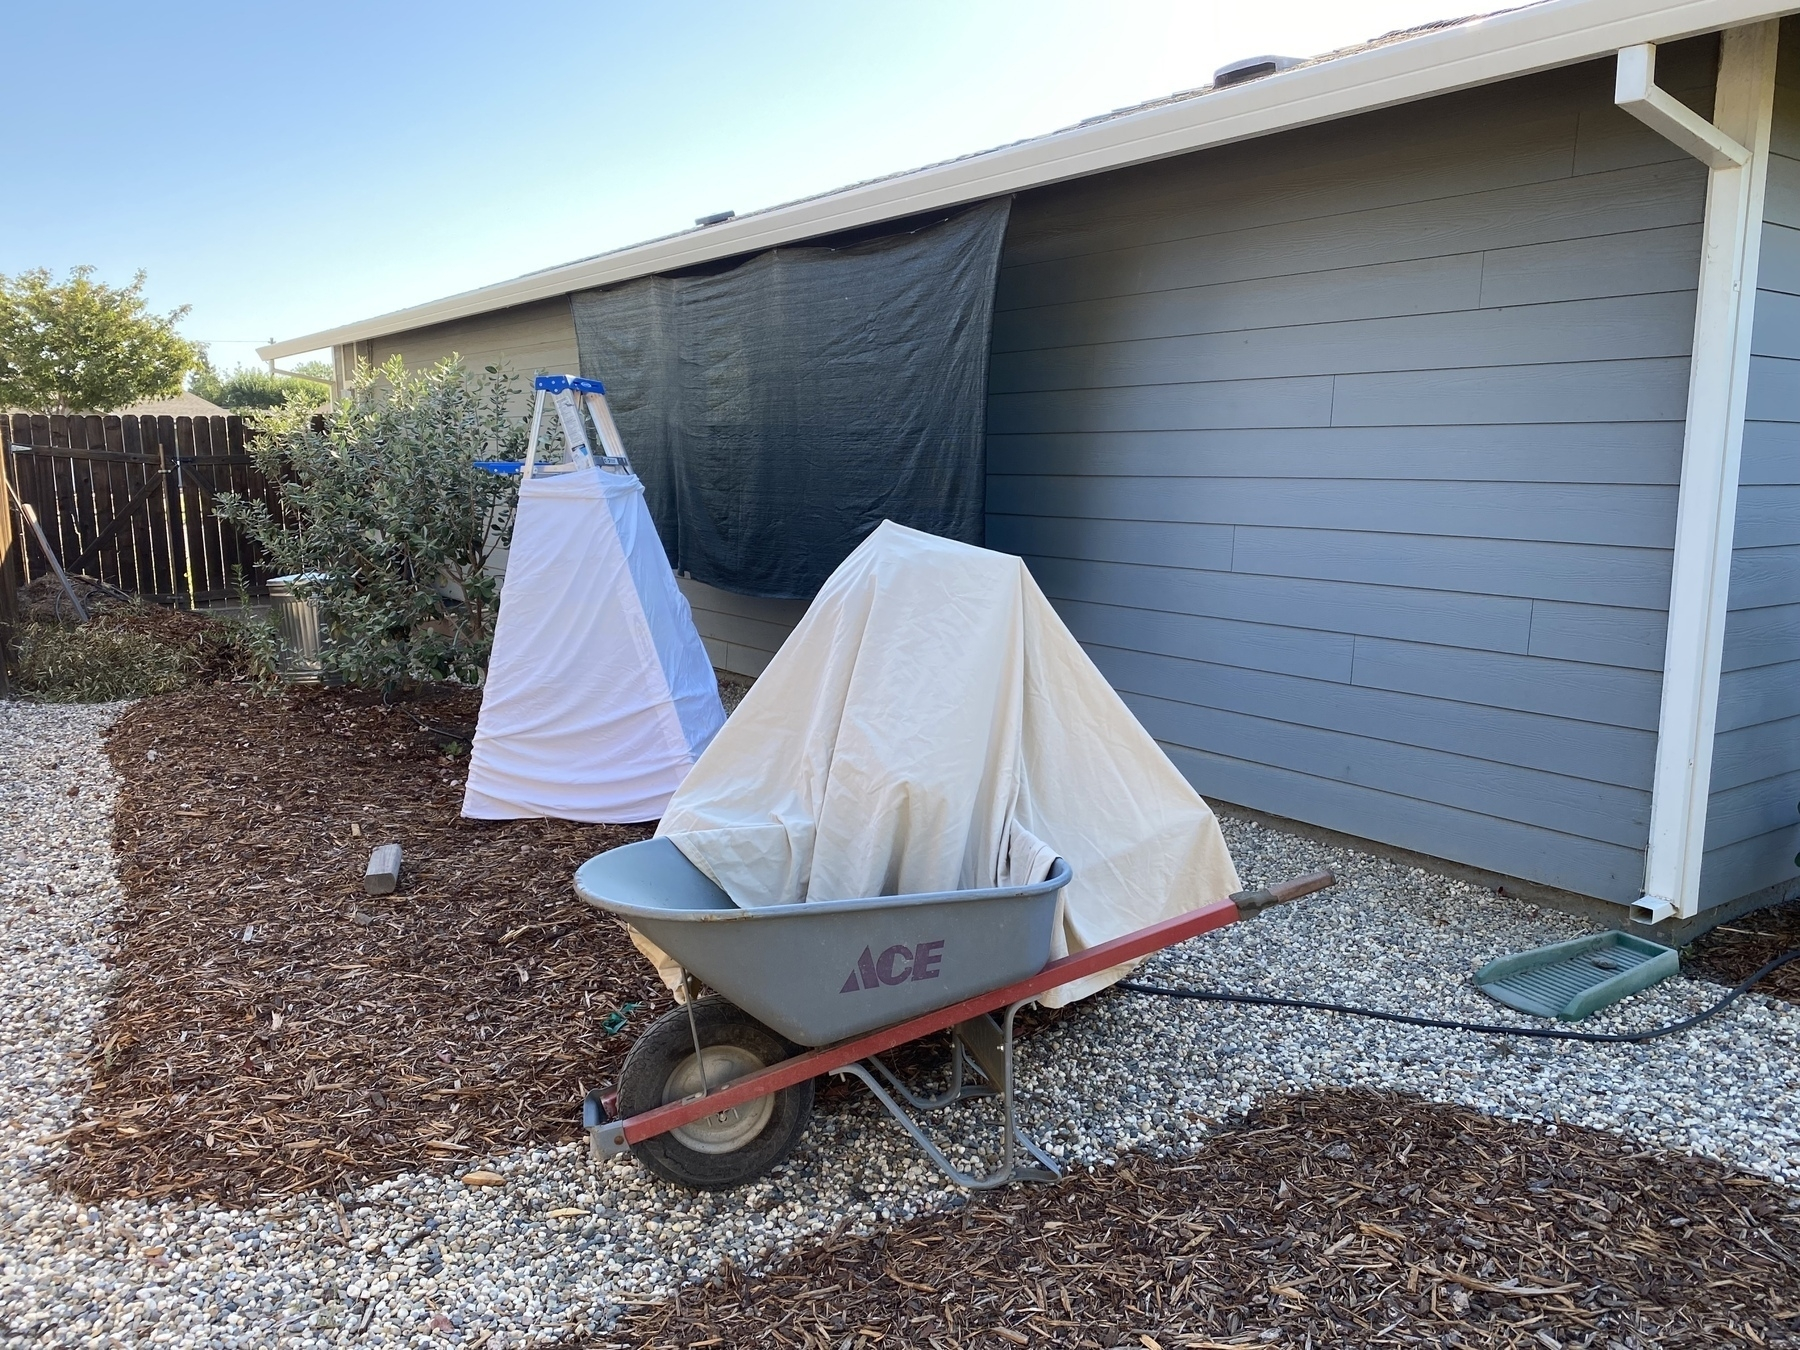 Sheets covering two avocado trees